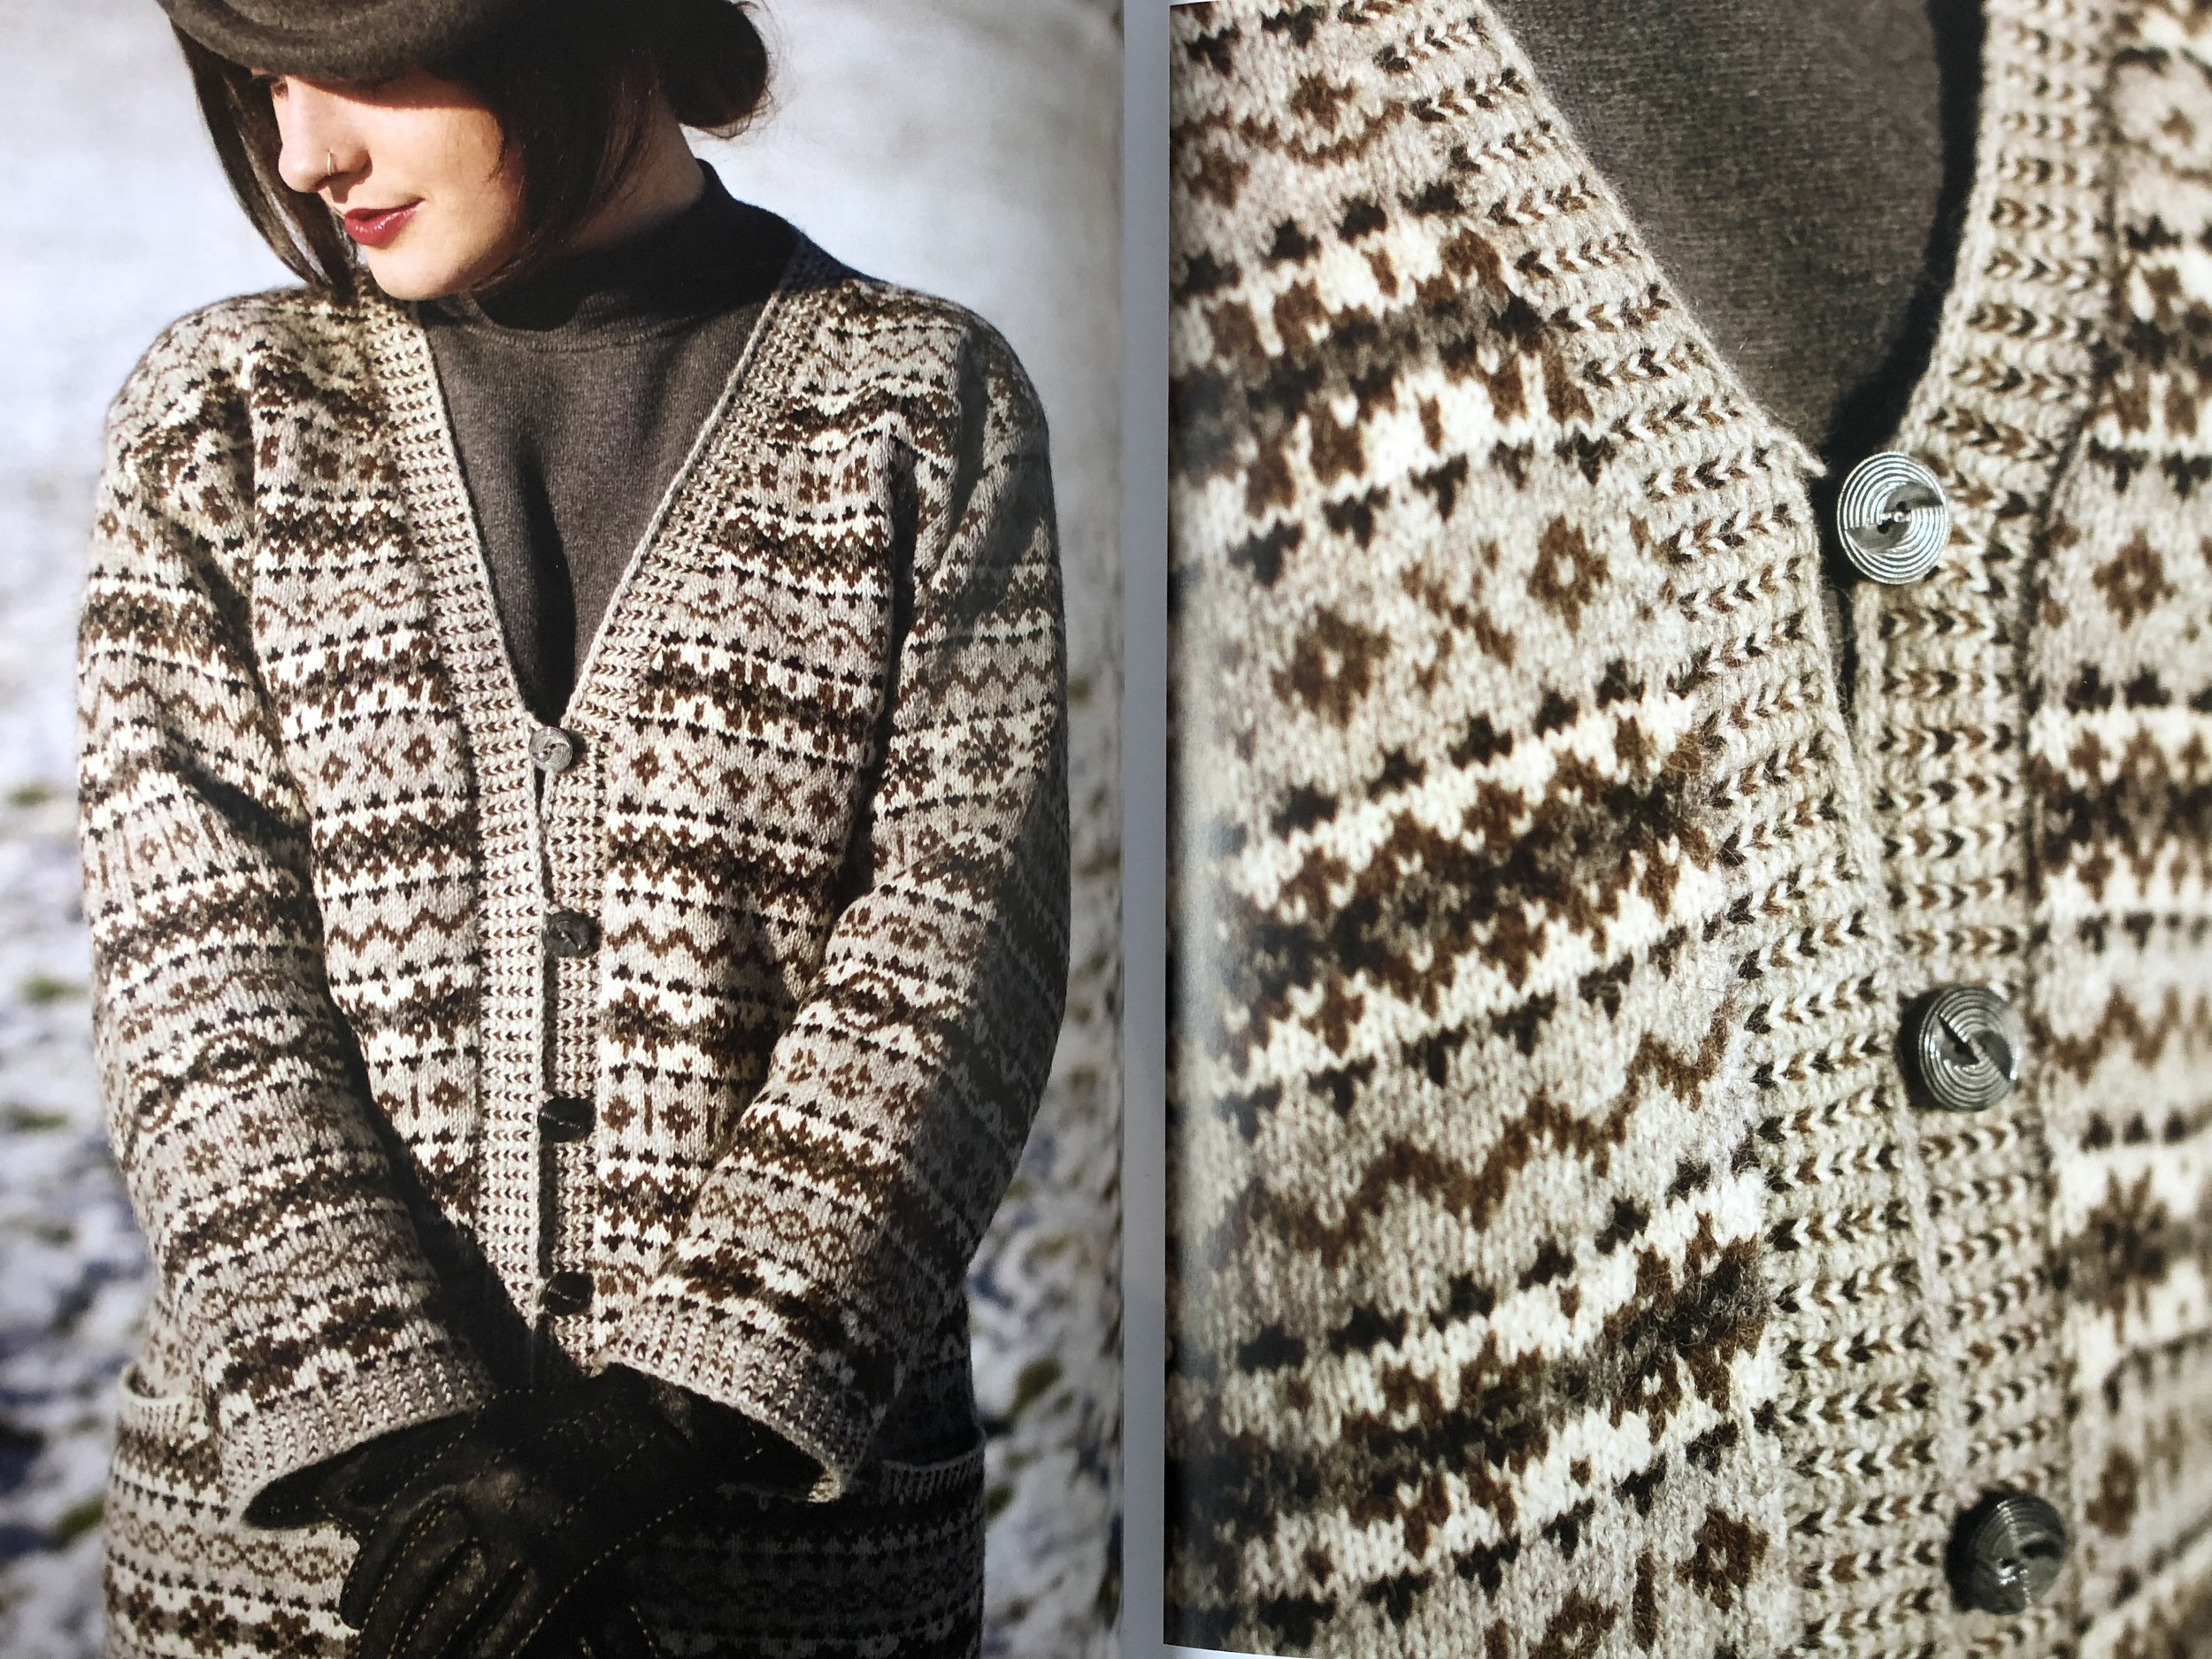 Stunning photos of the Hilda cardigan from the book.